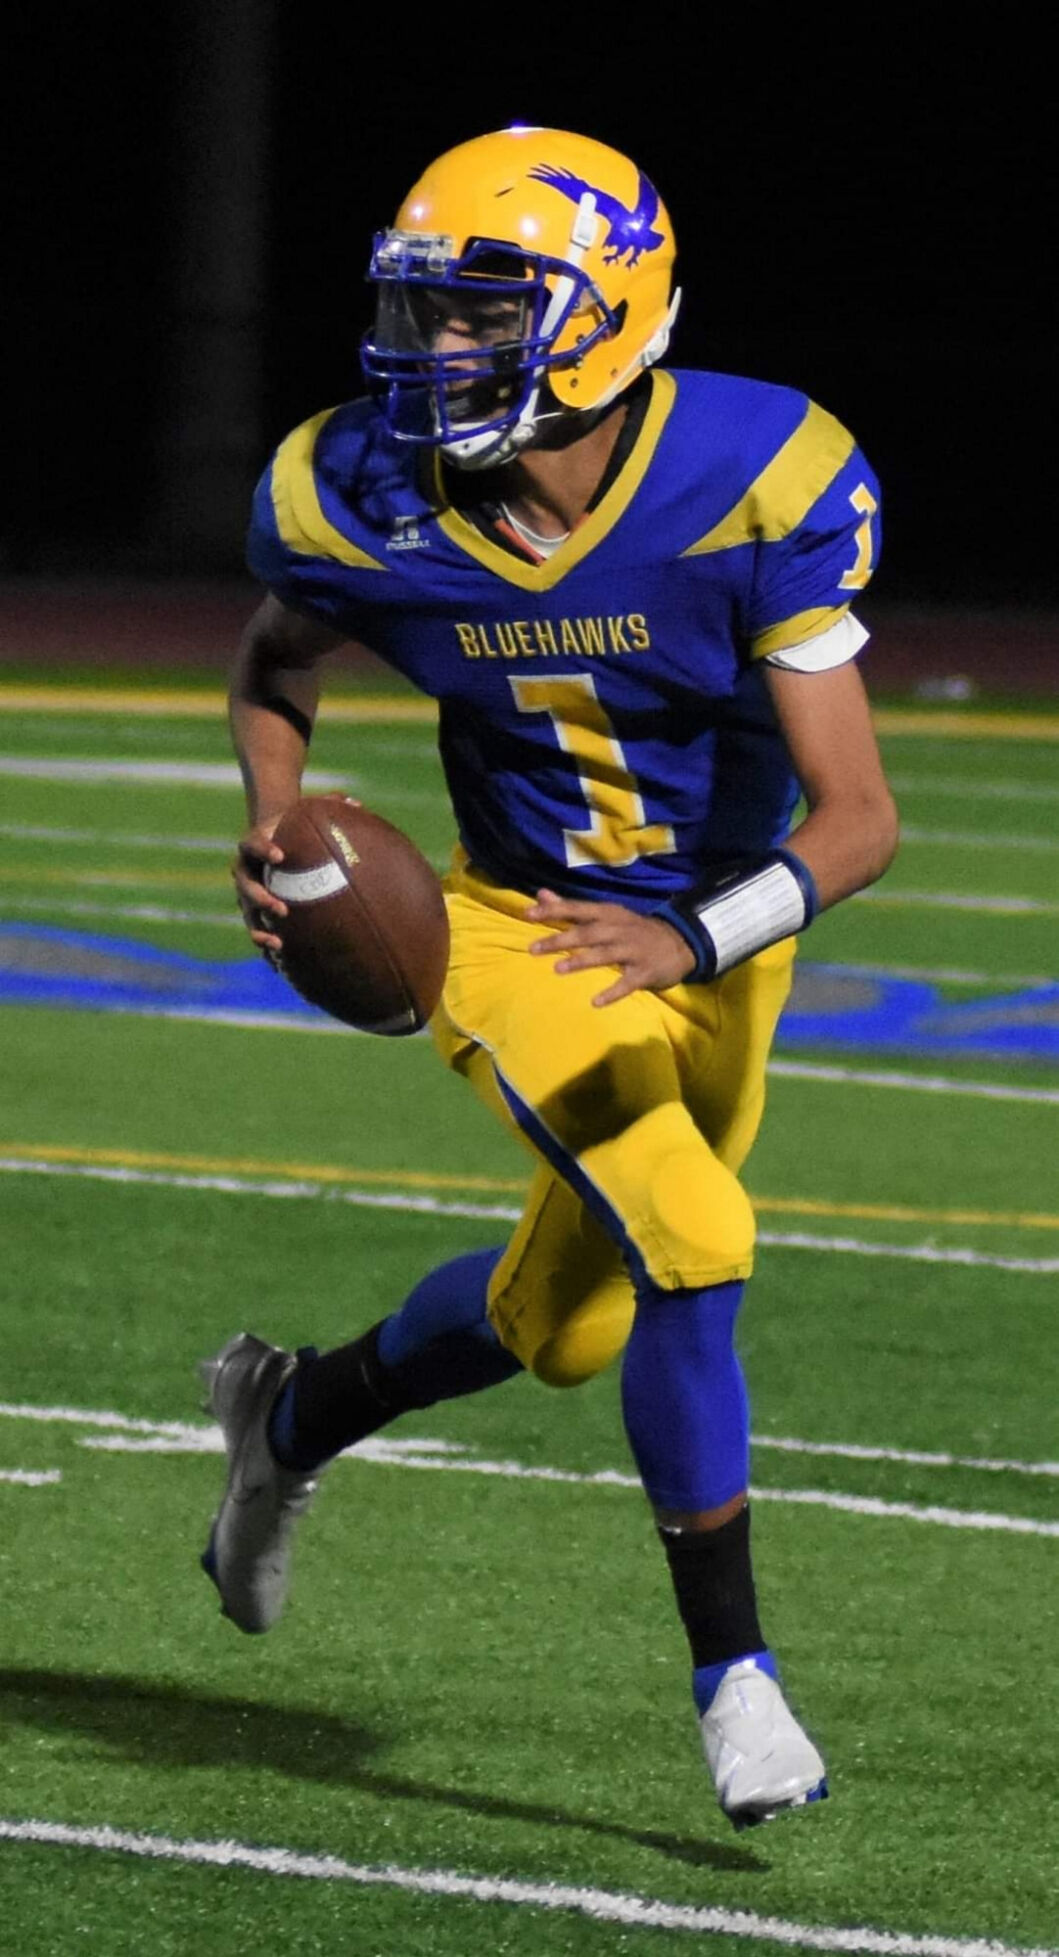 H.S. FOOTBALL: Hudson faces key game against Voorheesville